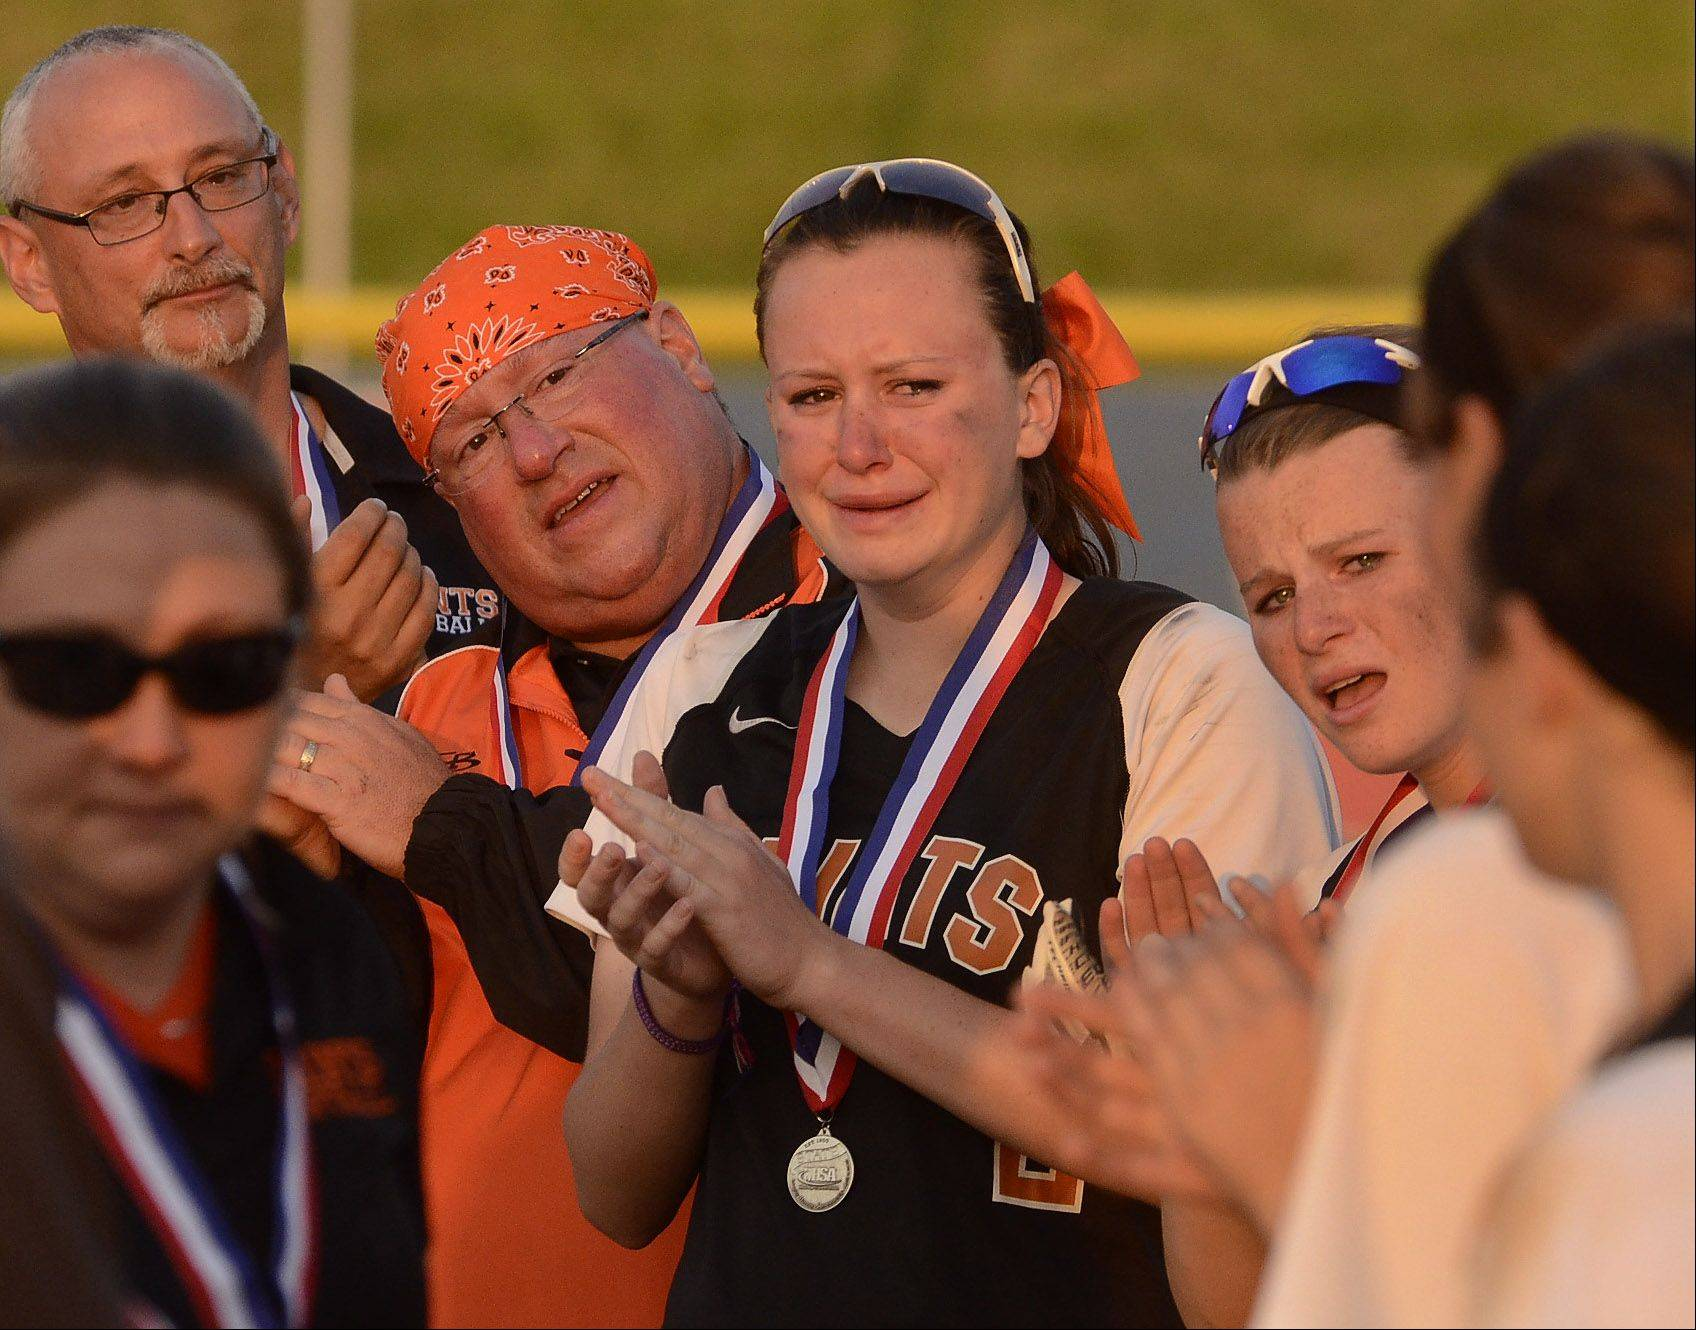 With tears in her eyes, Olivia Lorenzini applauds her teammates as they receive their 2nd place medals after losing the Class 4A softball championship game to Minooka.